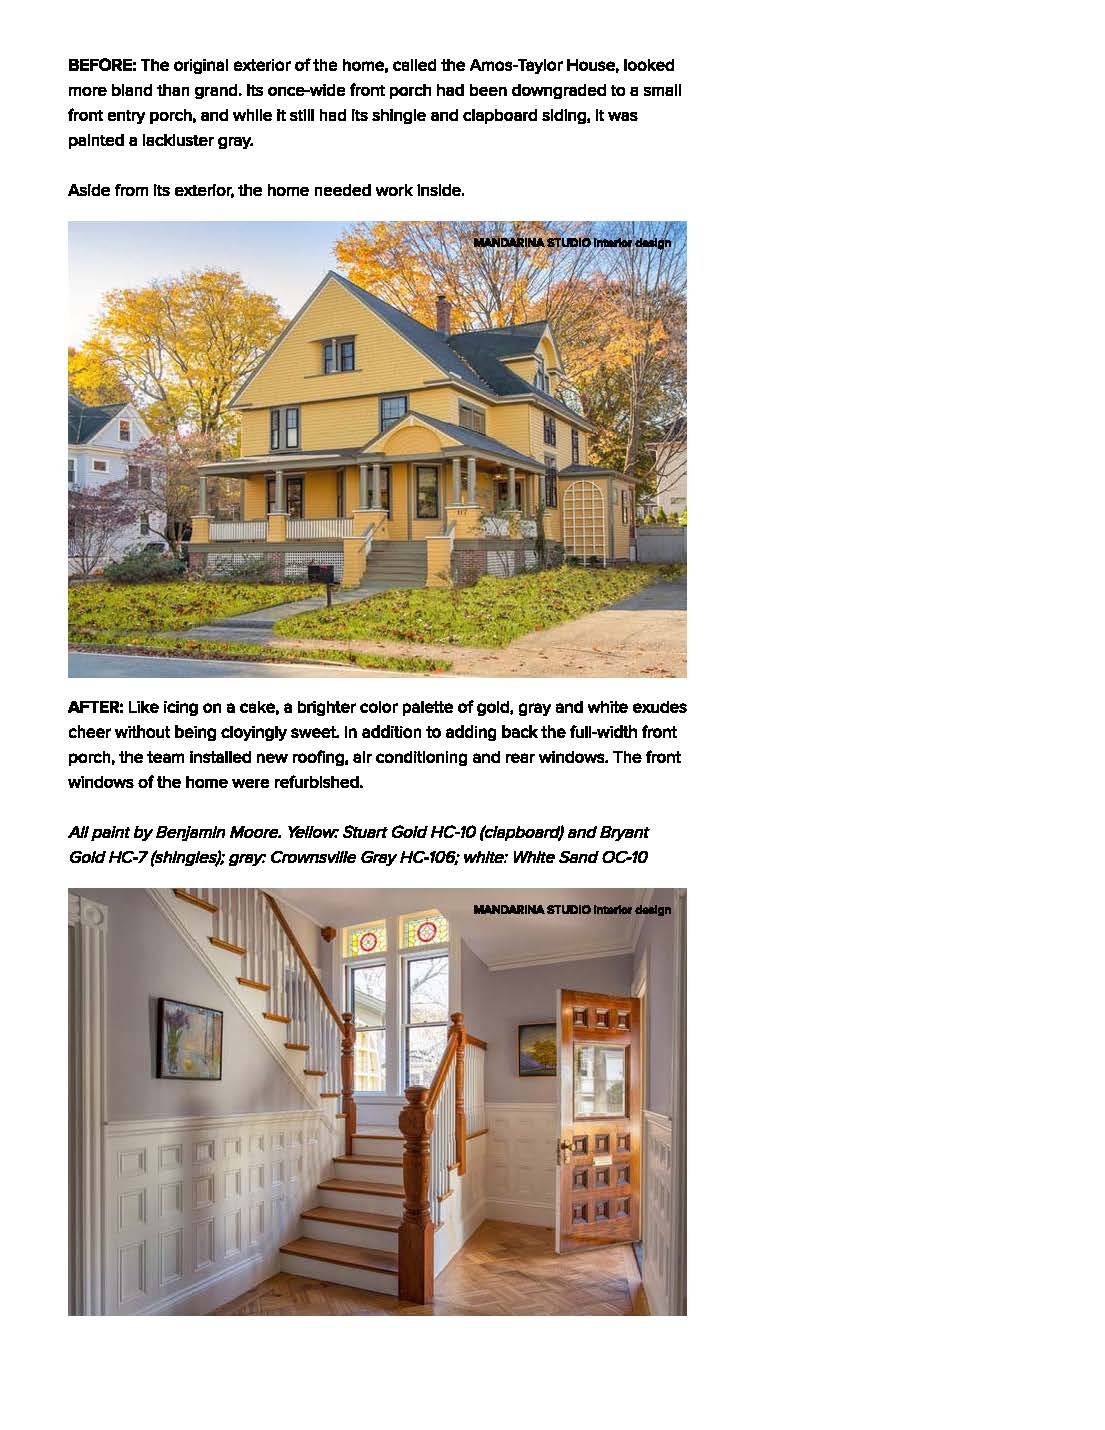 Houzz Tour_ The Remaking of a Queen Anne in Boston (1)_Page_02.jpg